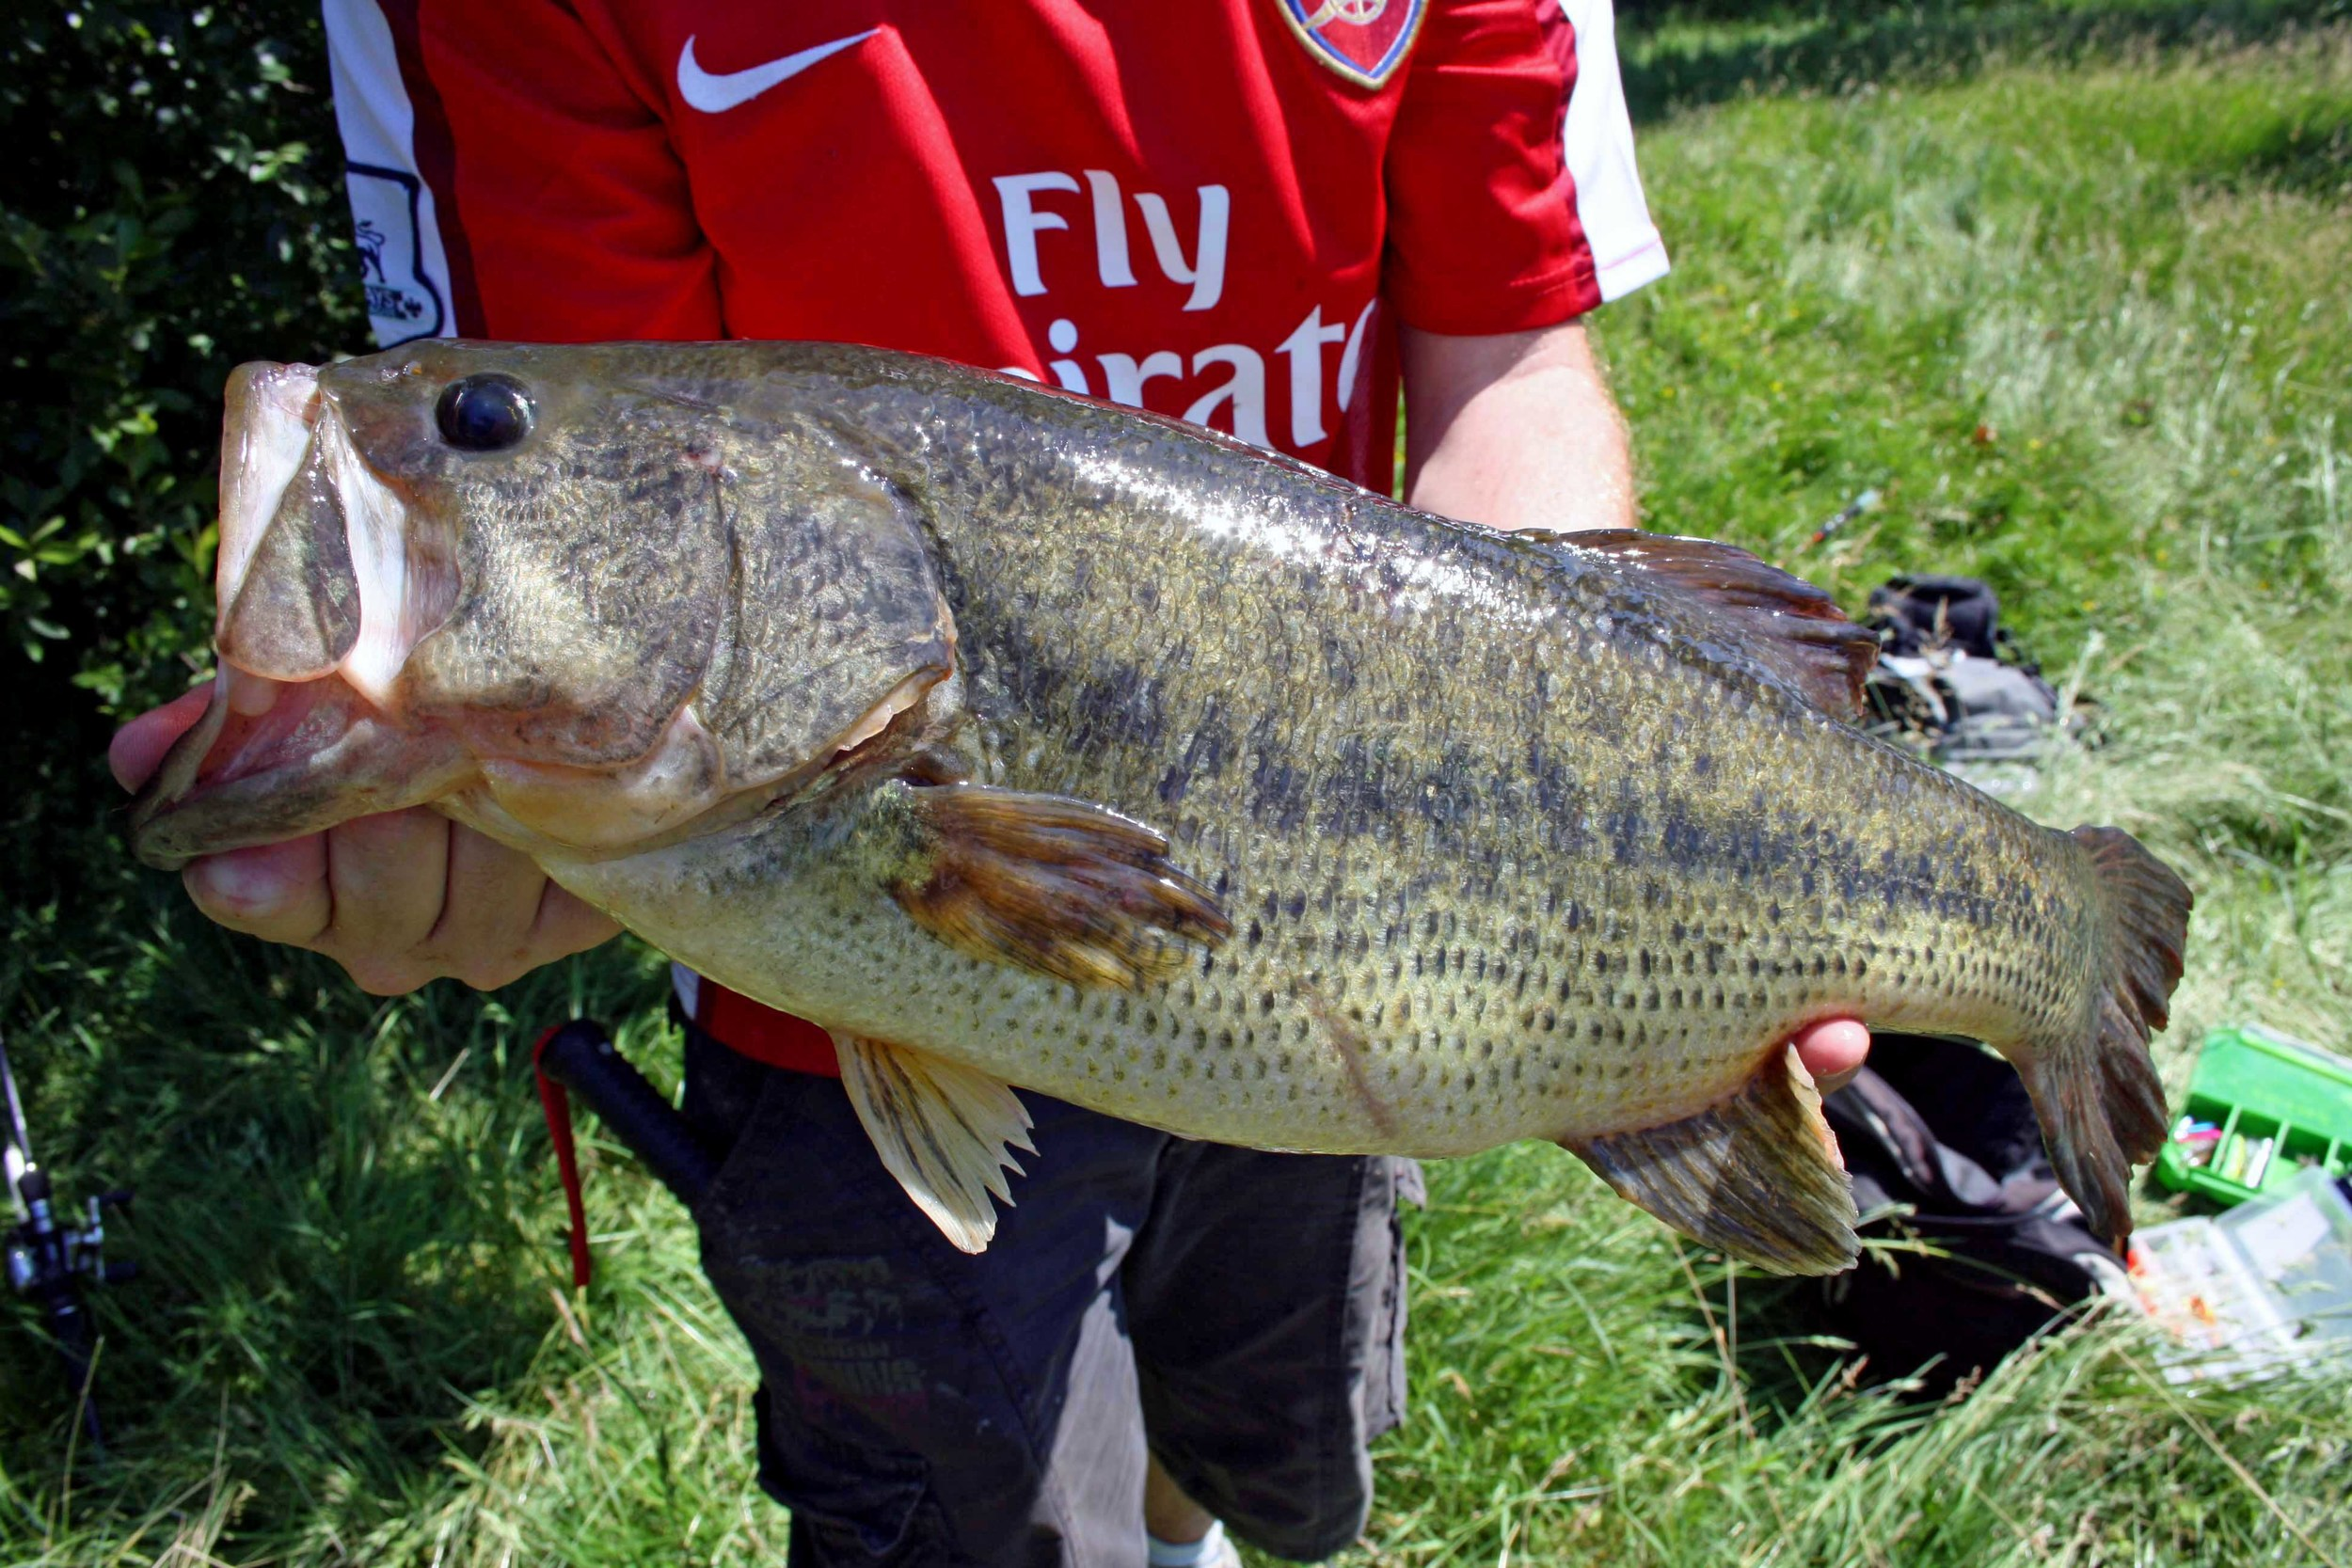 """A closer look at the urban lunker. This is my personal best largemouth bass from an urban pond. Estimated length from photograph is roughly 24""""."""